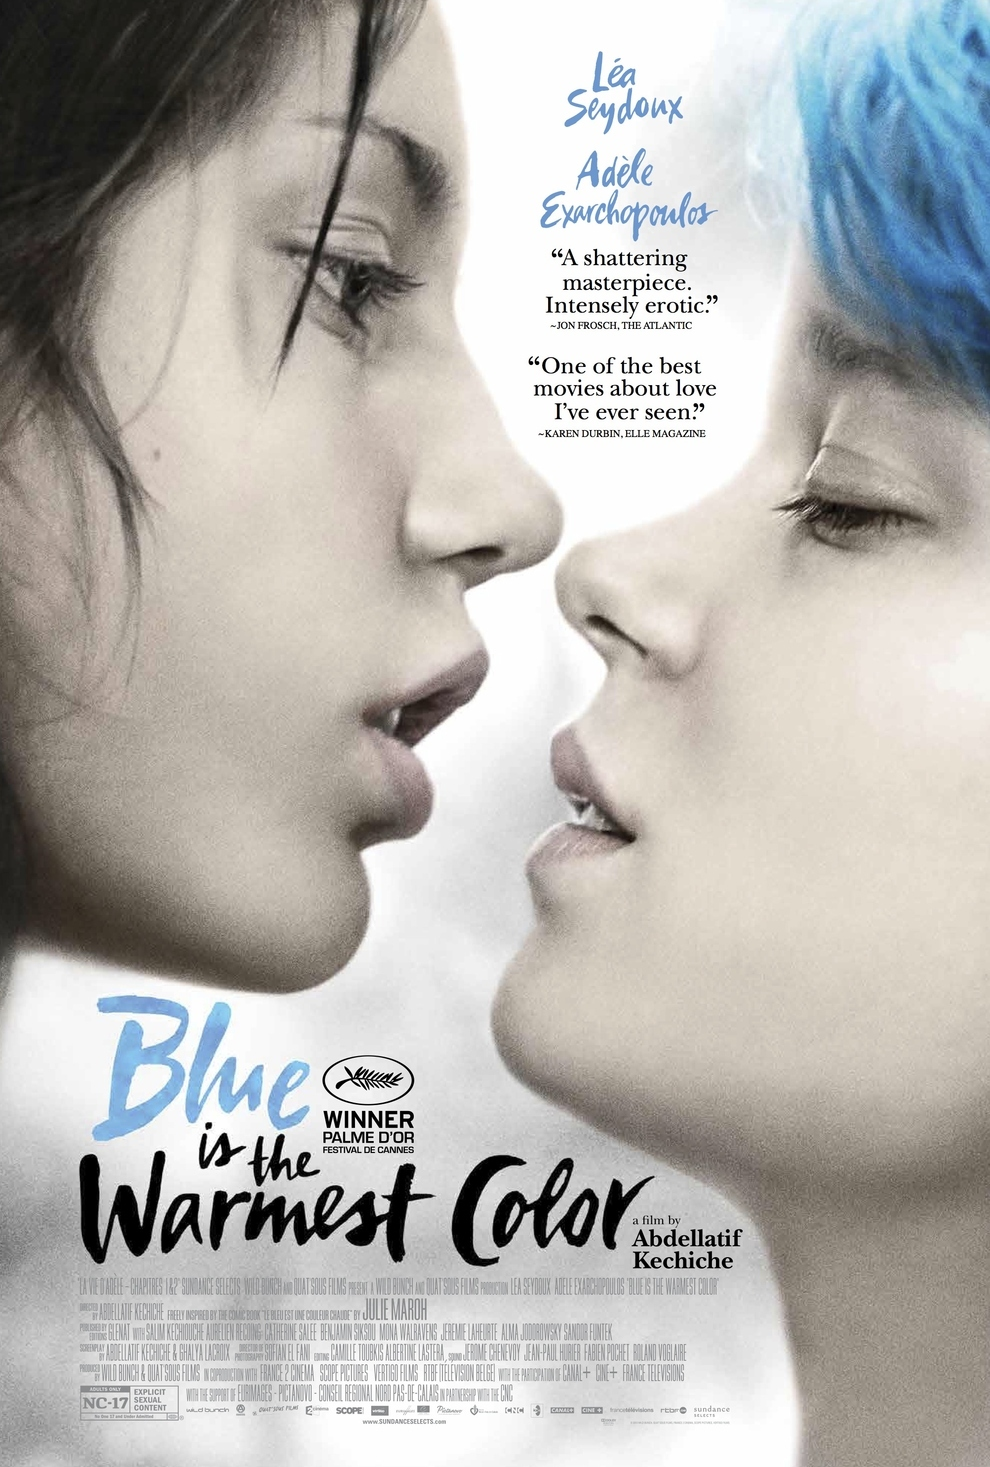 Blue is the Warmest Color-Official Poster Banner PROMO POSTER-23SETEMBRO2013-01